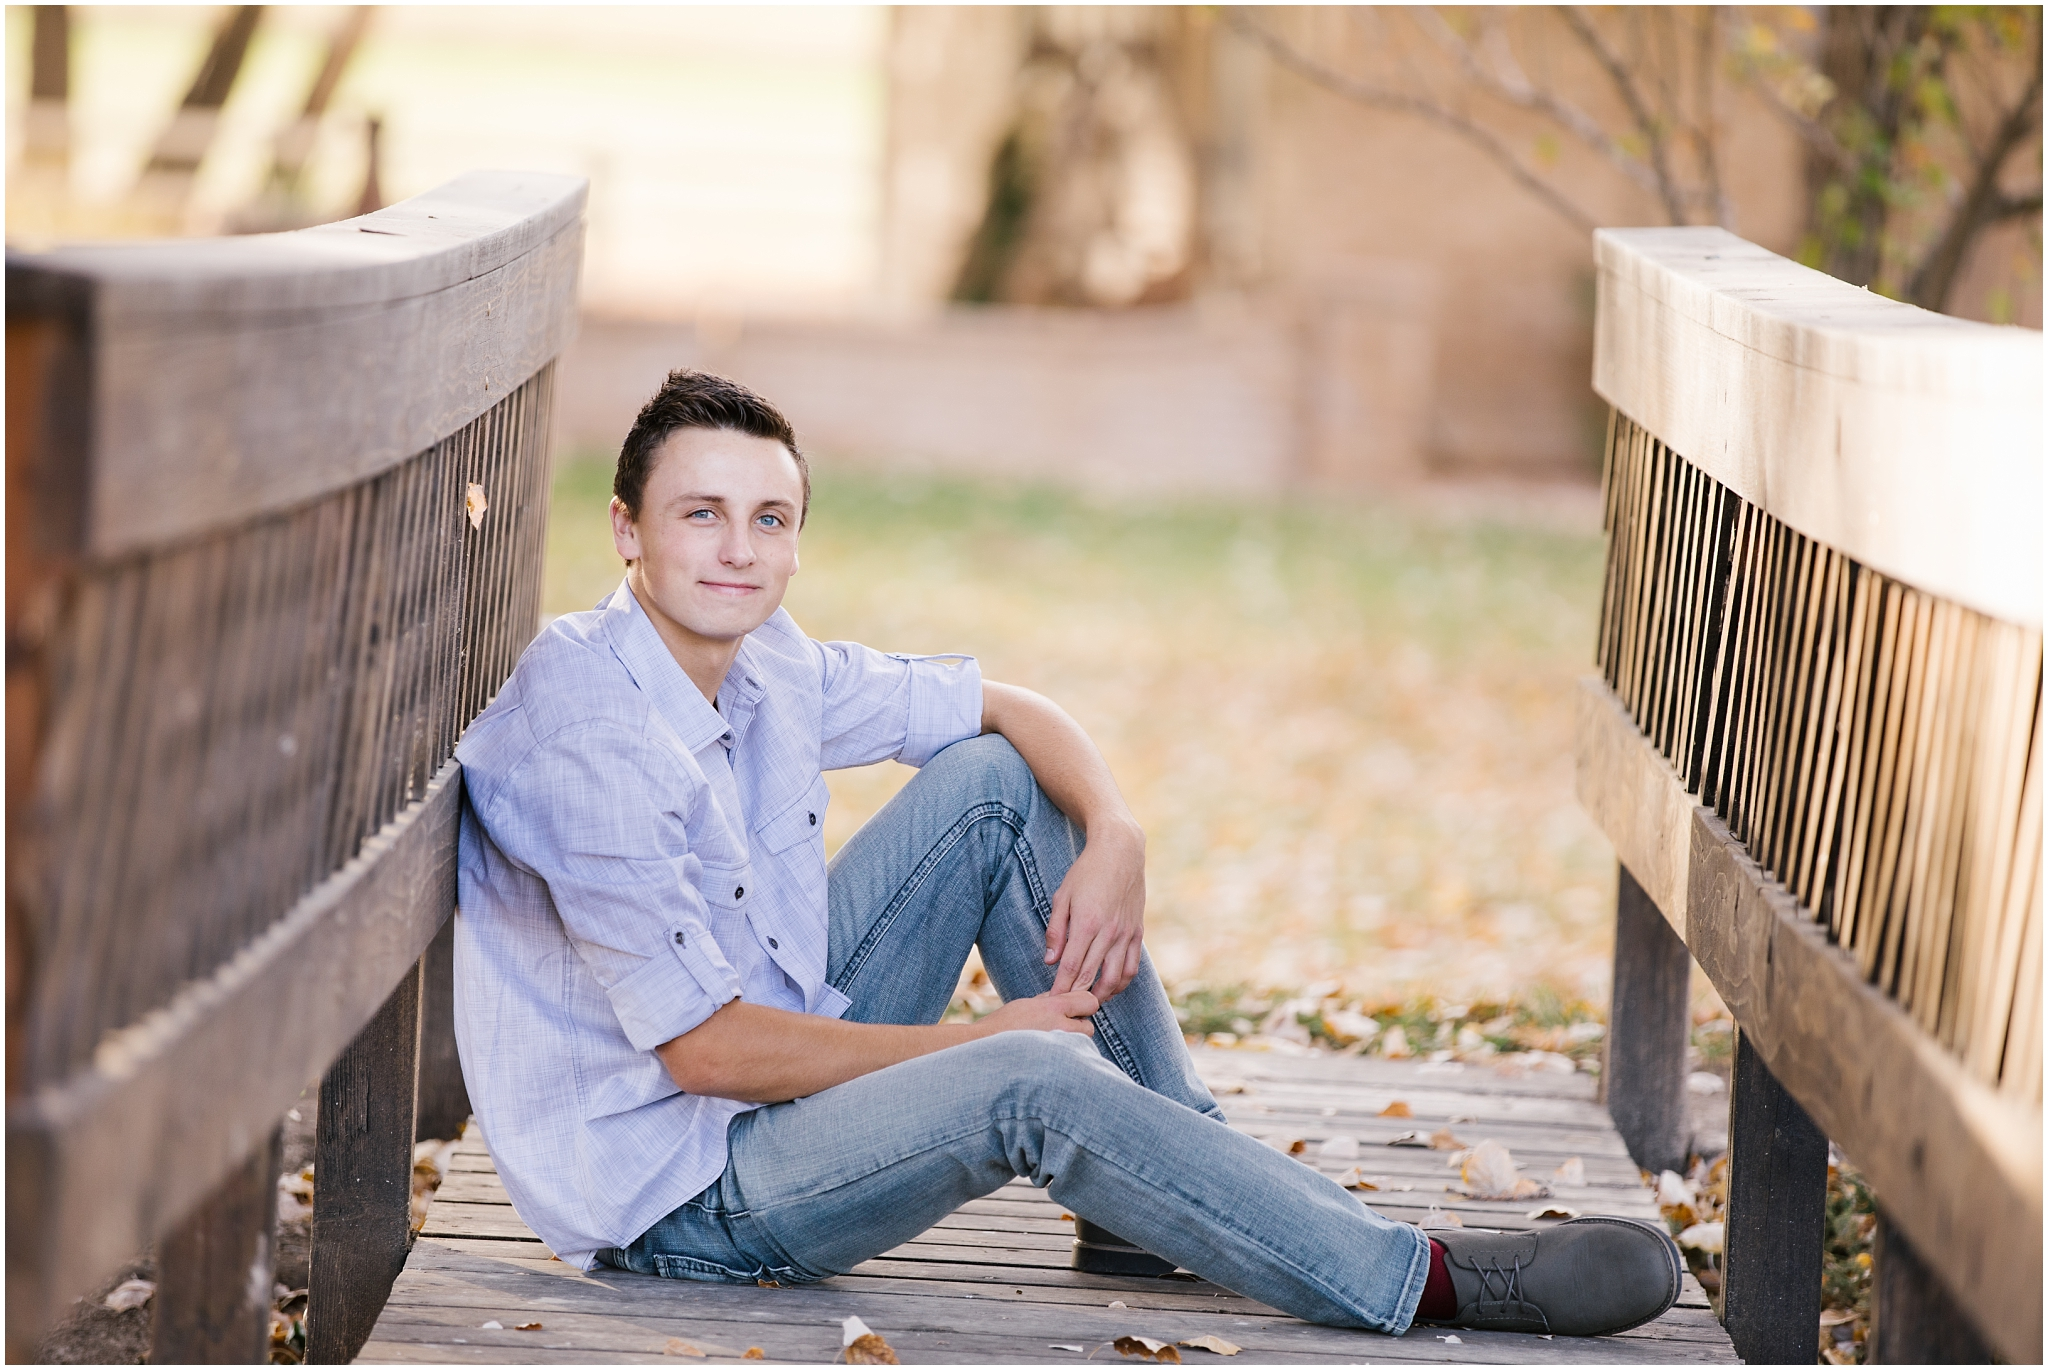 Marcus--64_Lizzie-B-Imagery-Utah-Senior-Photographer-Salt-Lake-City-Park-City-Utah-County.jpg